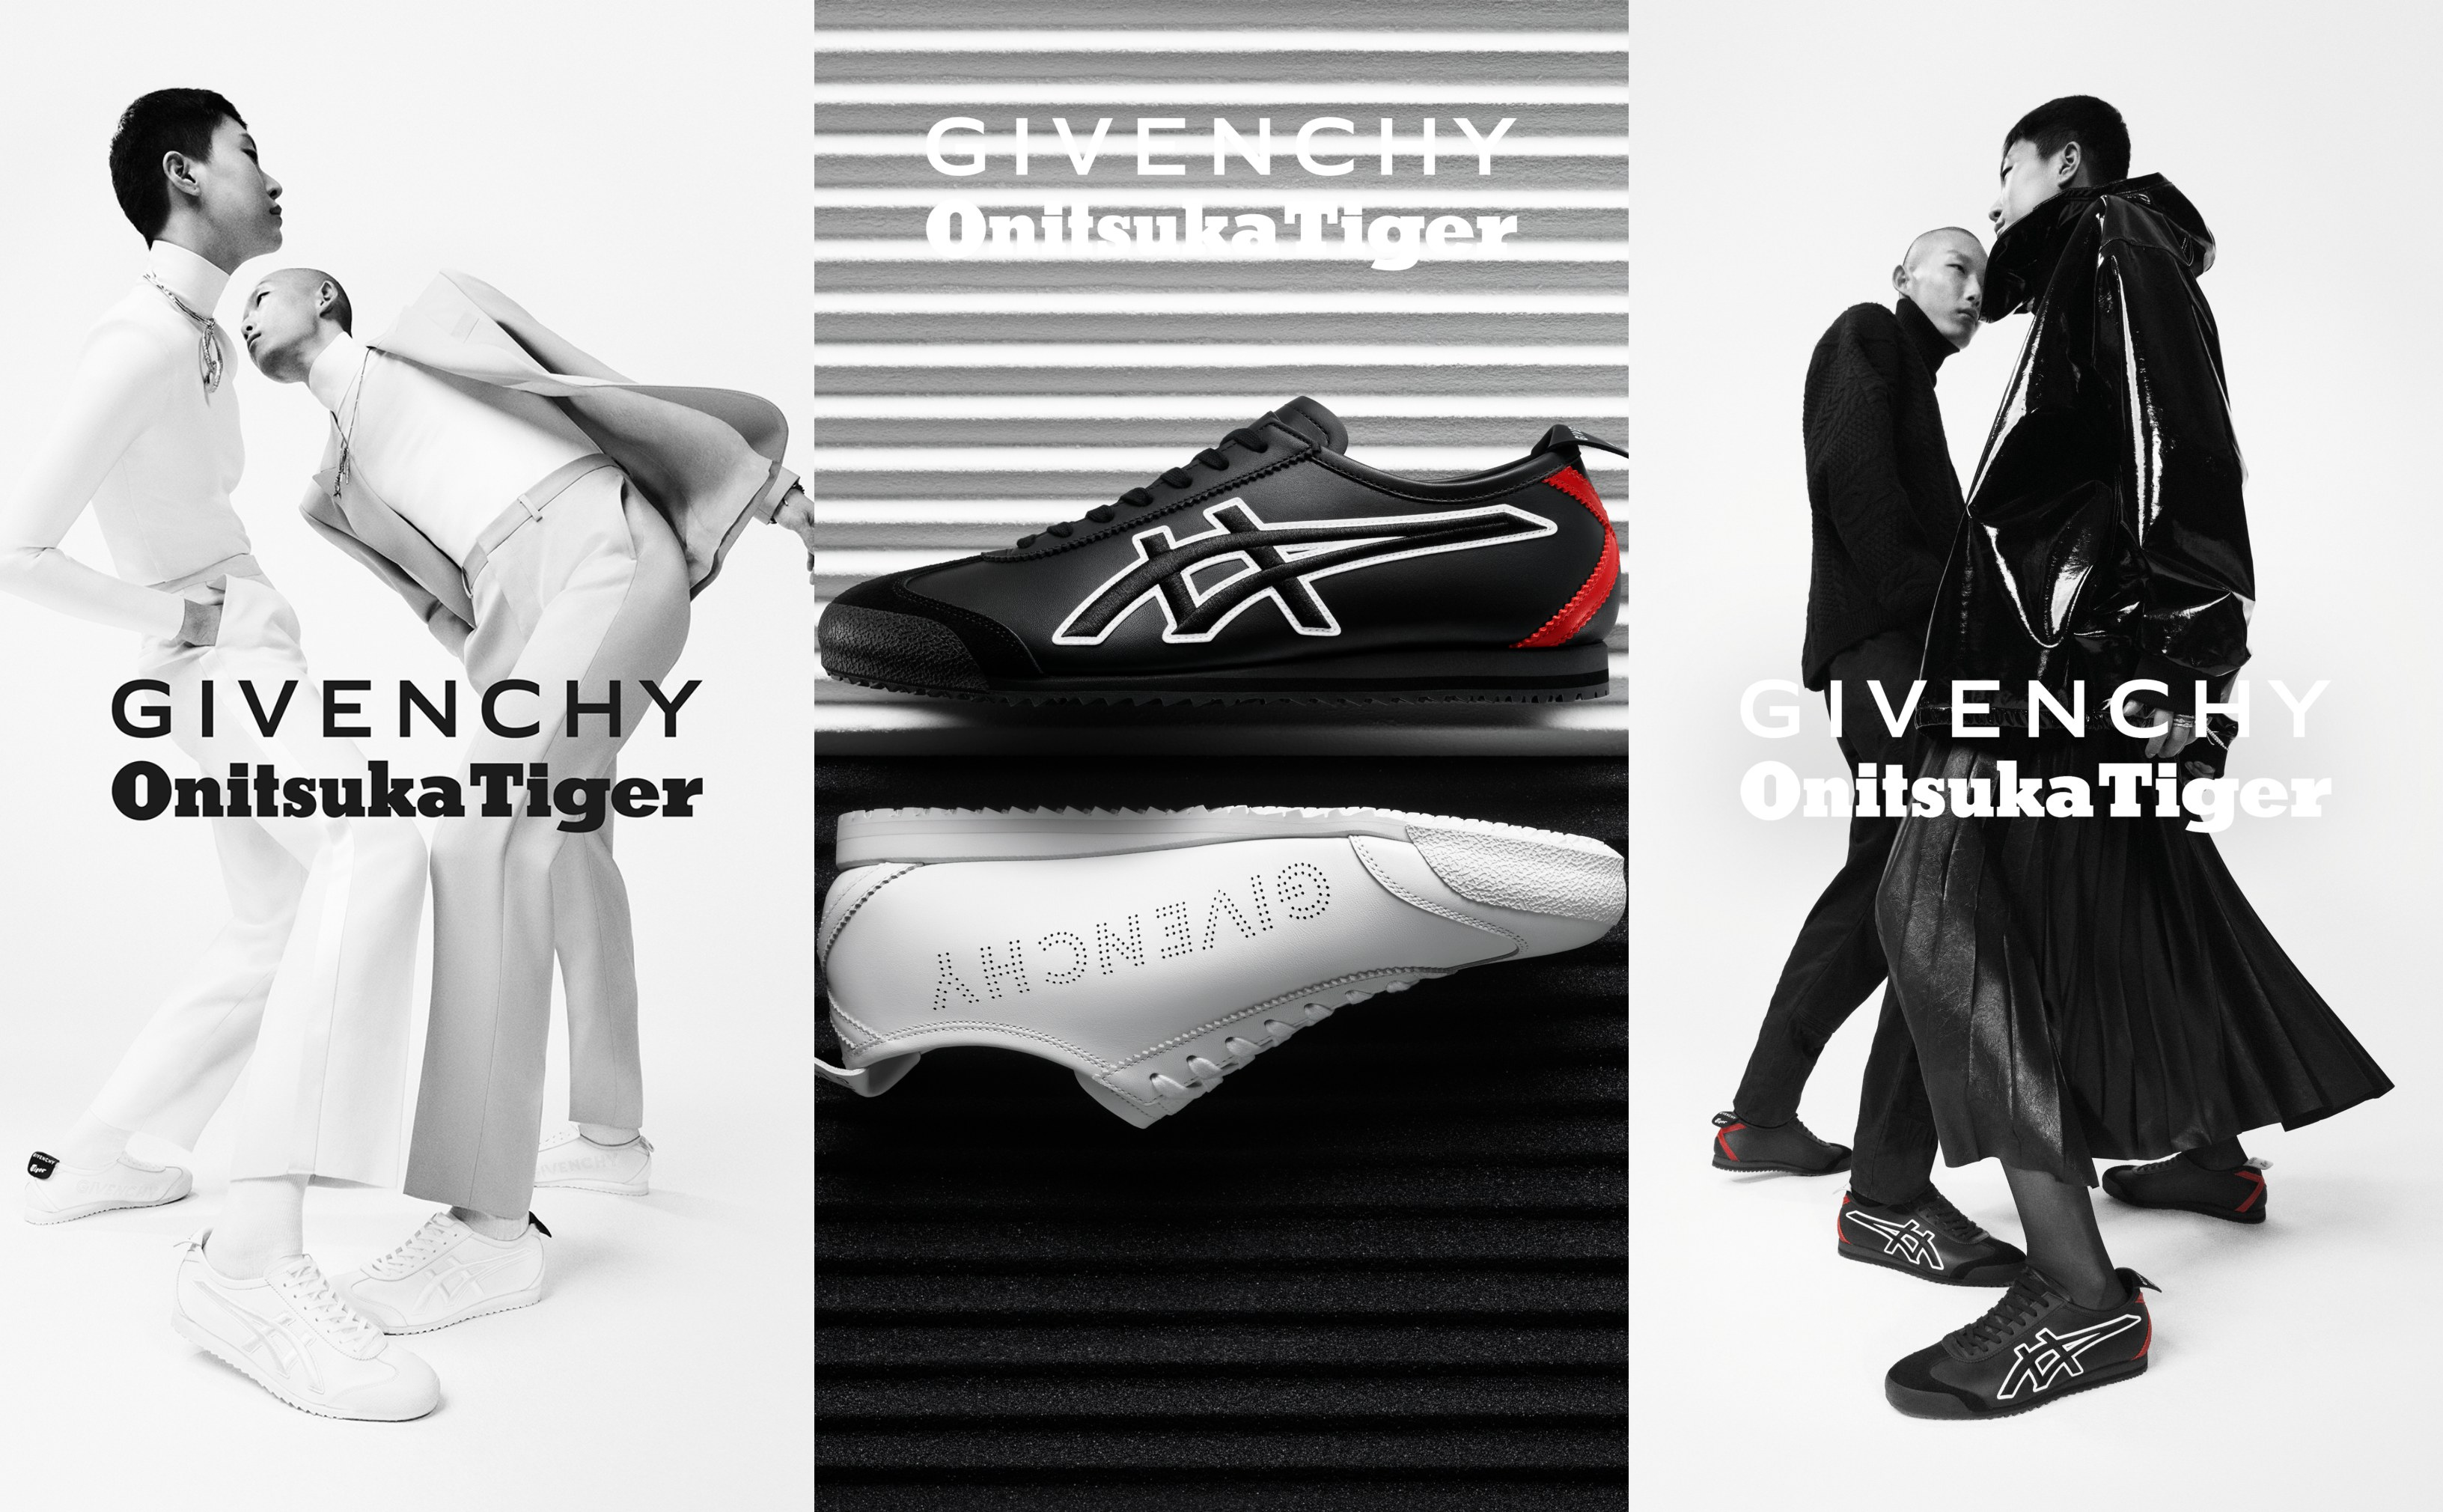 Givenchy and Onitsuka Tiger's surprise sneaker collaboration will up your street style cred